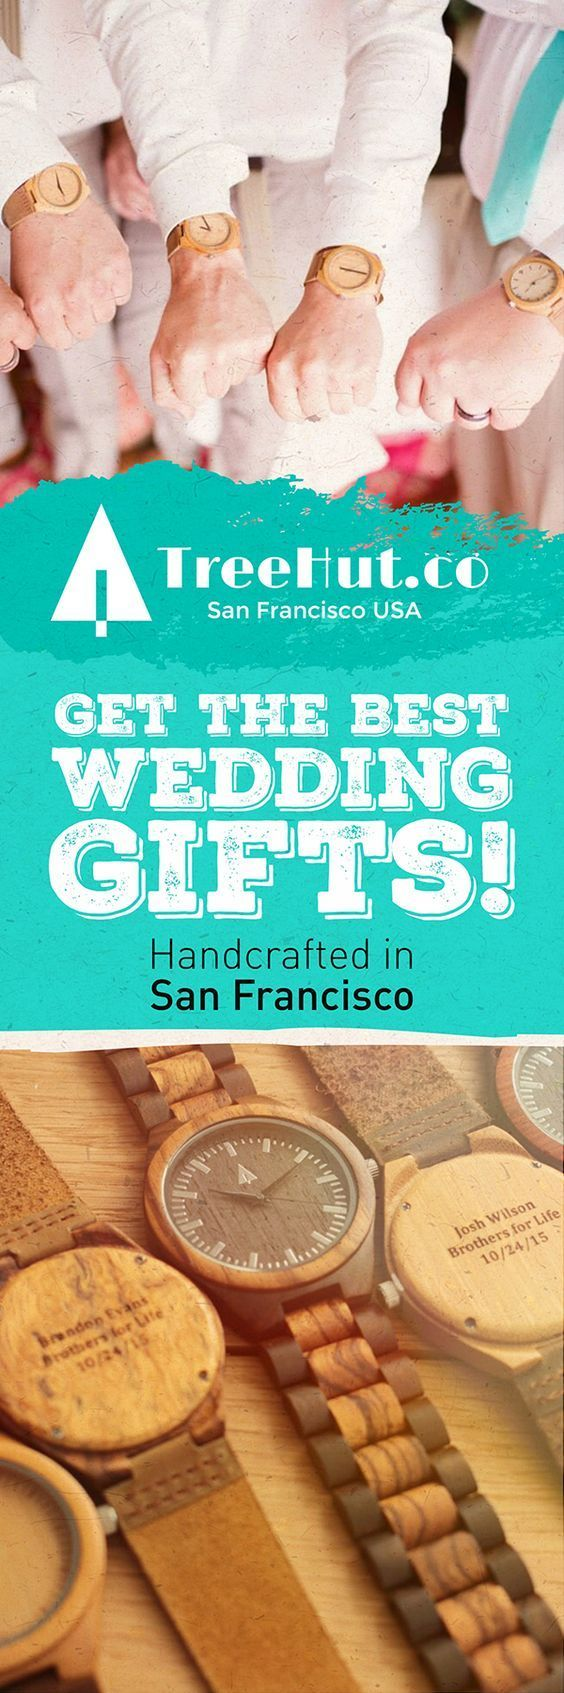 Give a unique, handcrafted wedding gift from Treehut Co. in San Francisco.